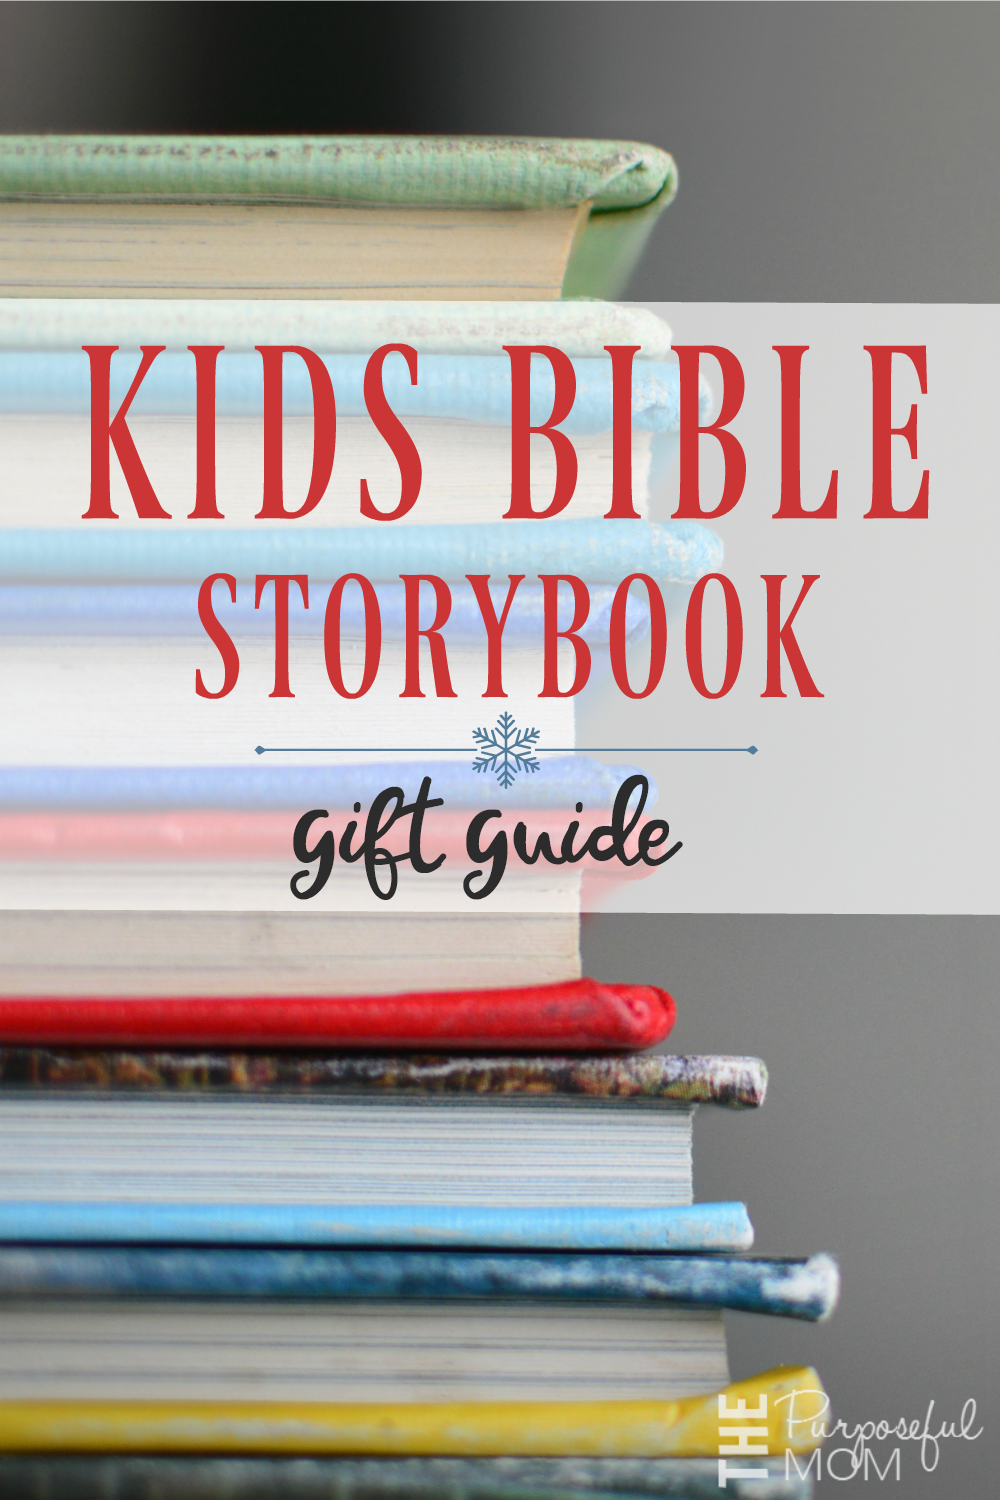 Kids Bible storybook gift guide